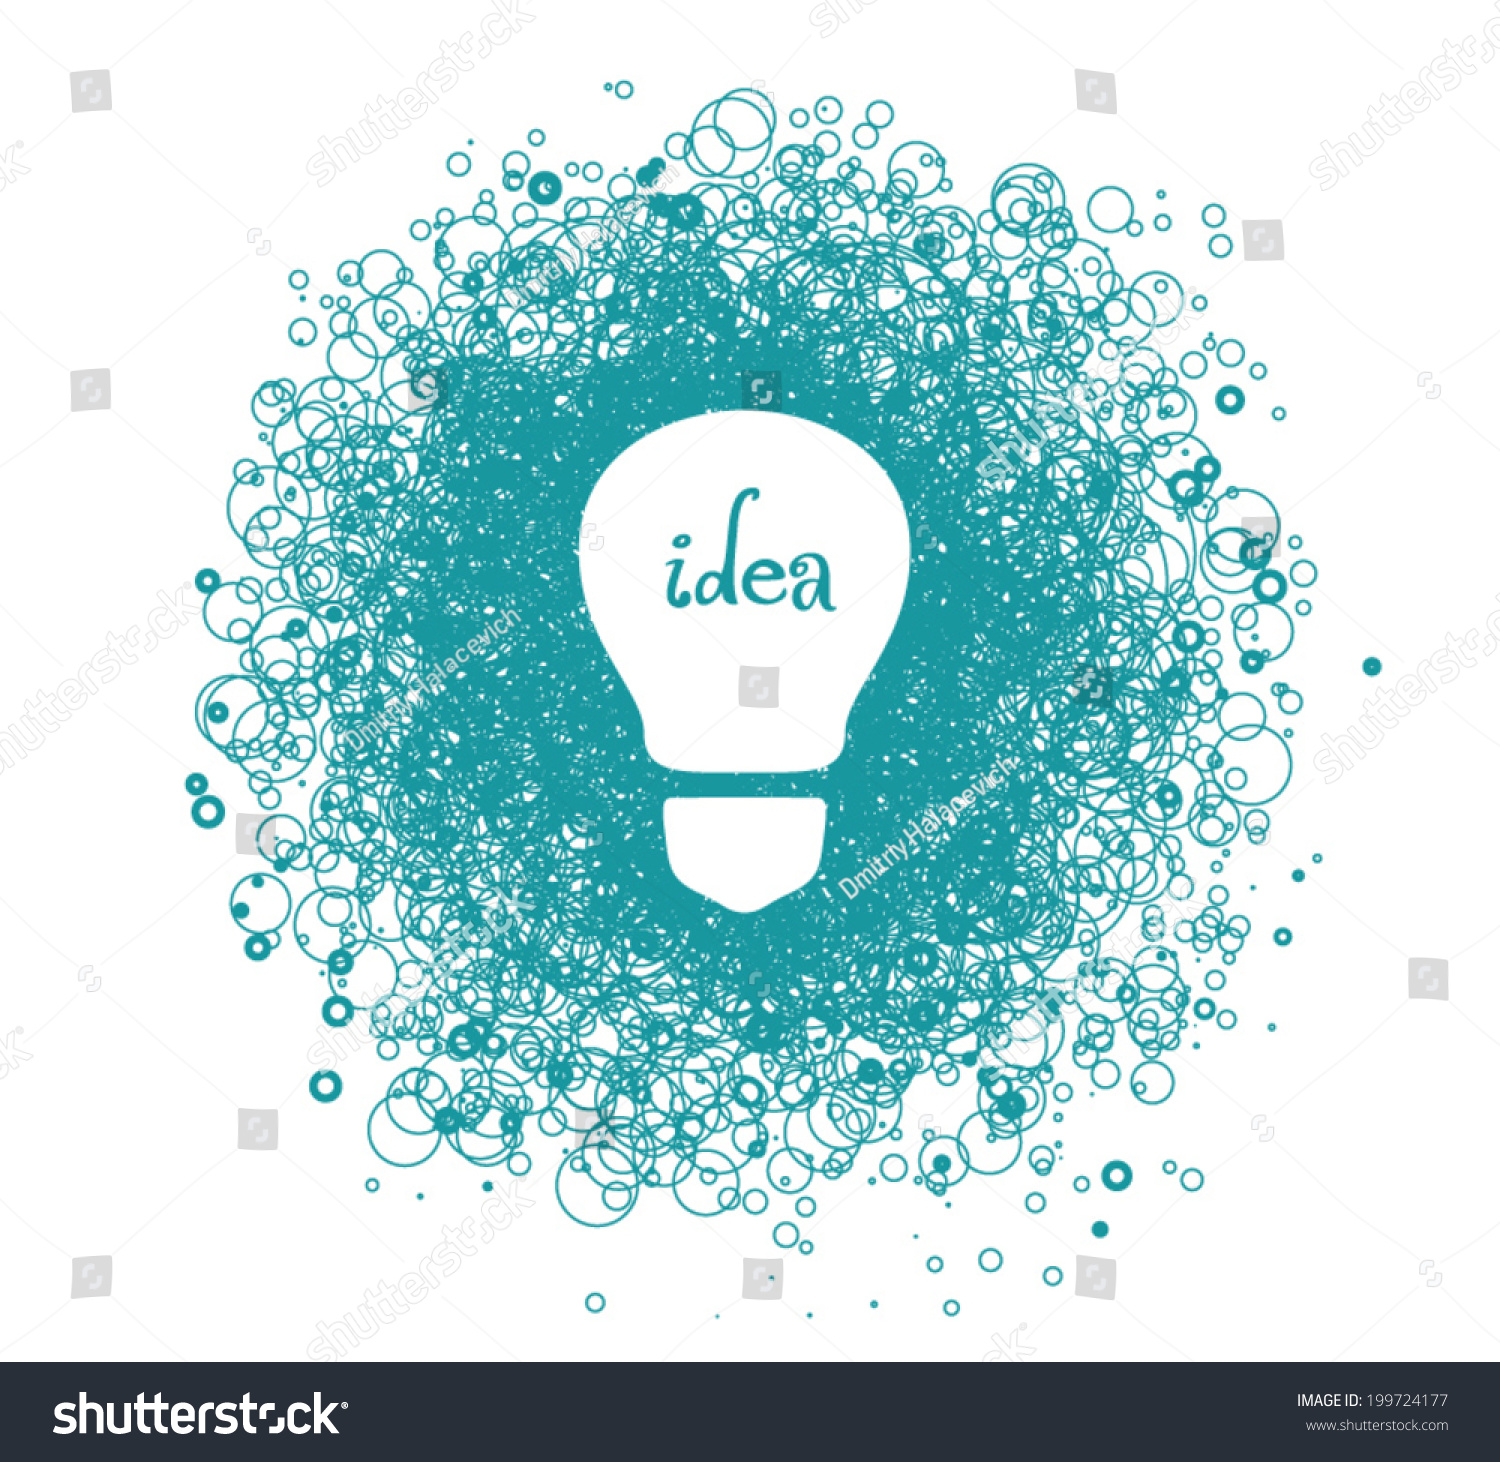 Light bulb idea symbol chaos stock vector 199724177 shutterstock light bulb idea symbol of chaos biocorpaavc Image collections